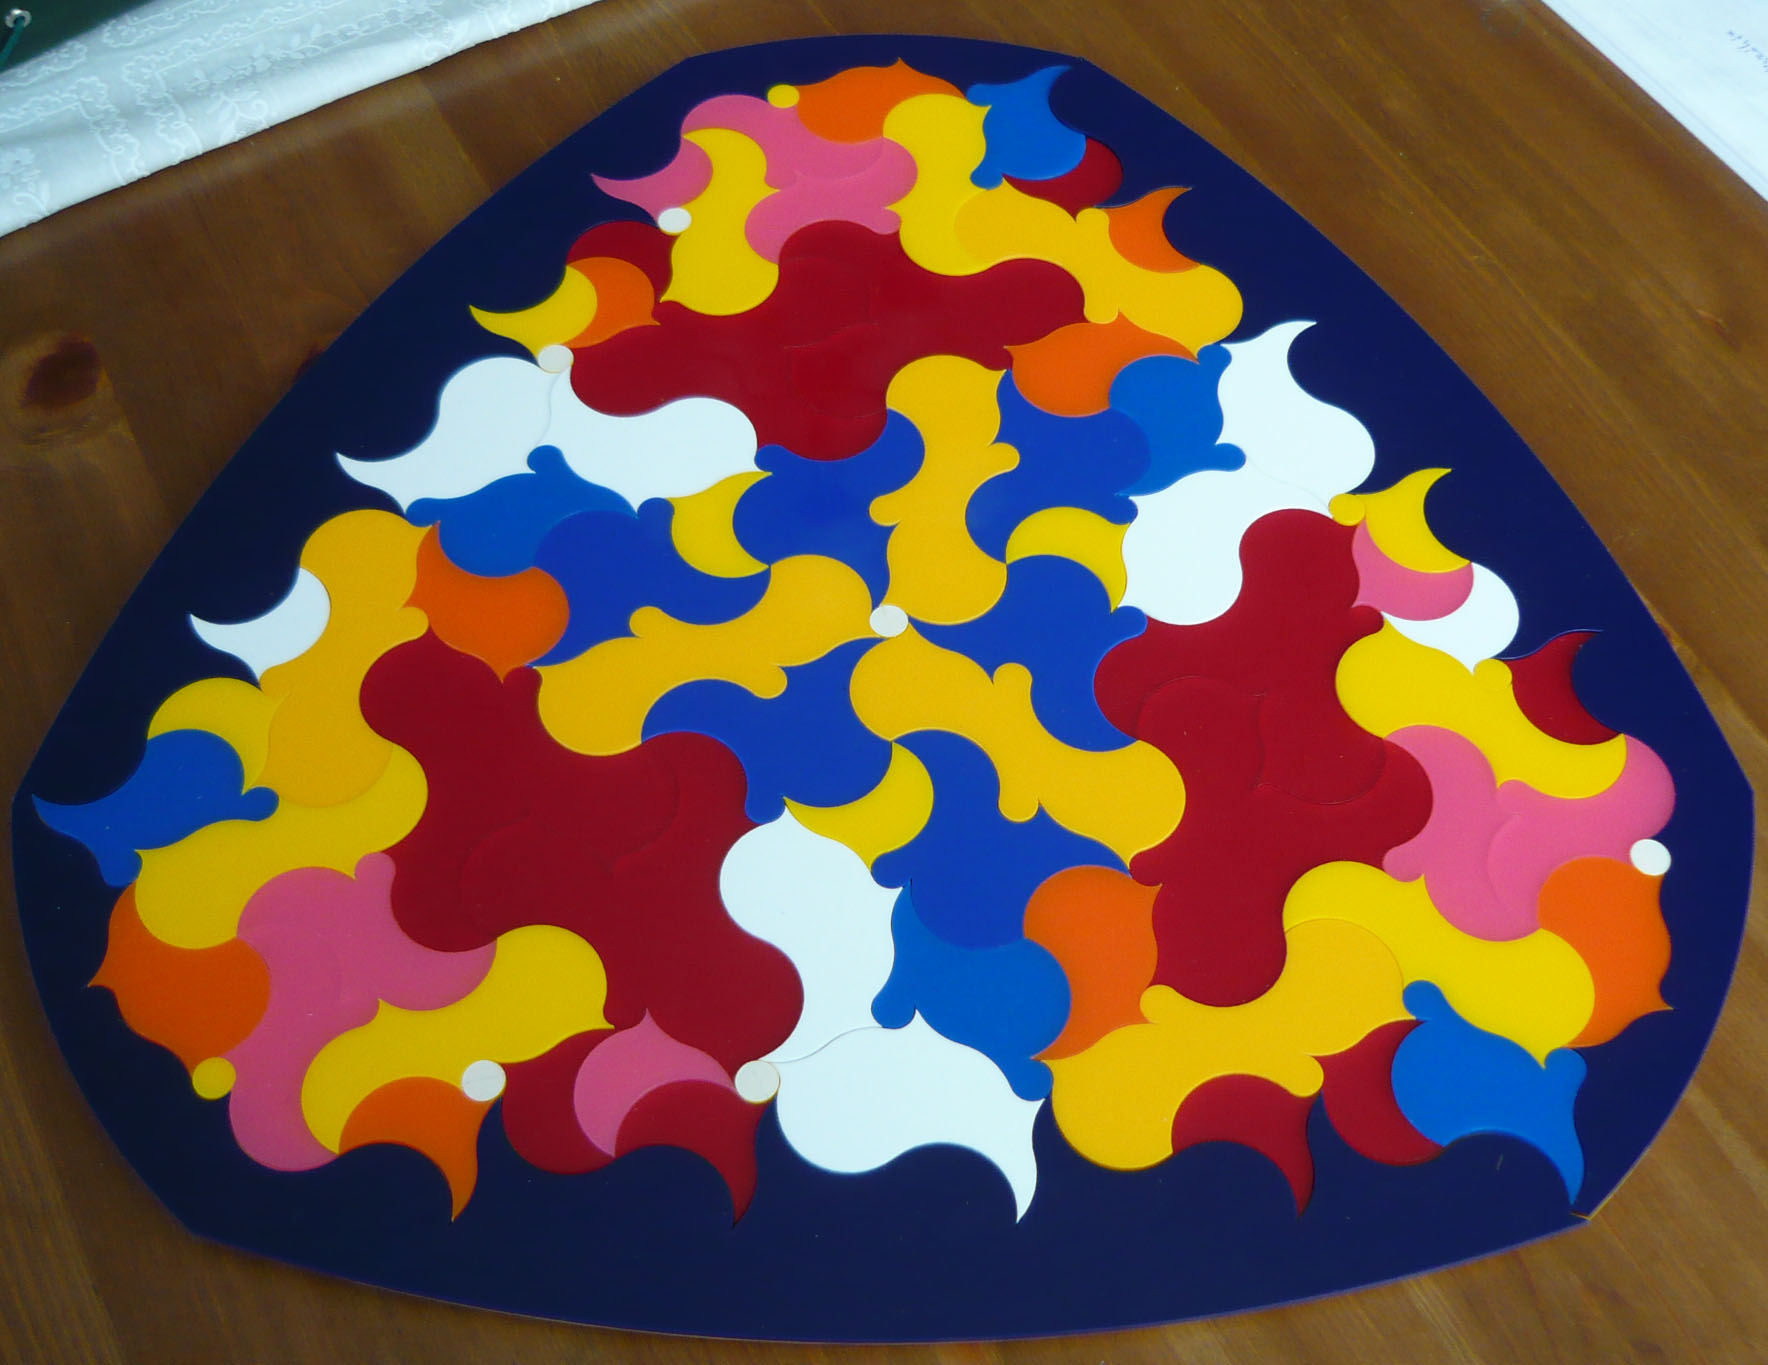 A curvy puzzle made by coloured acryl